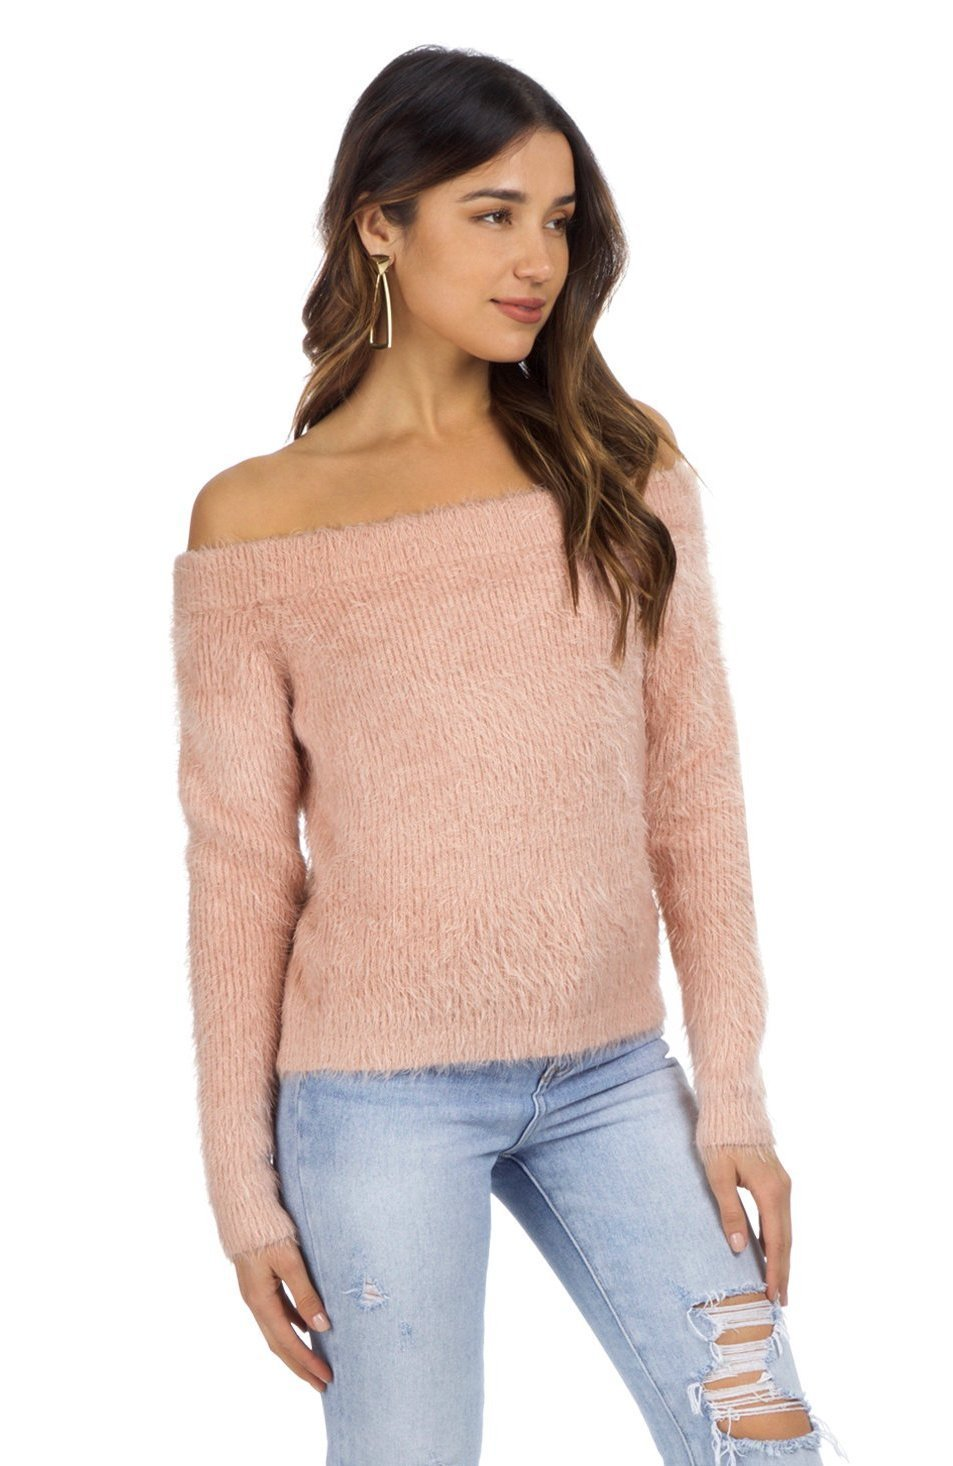 Woman wearing a sweater rental from MINKPINK called Florentine Off Shoulder Sweater